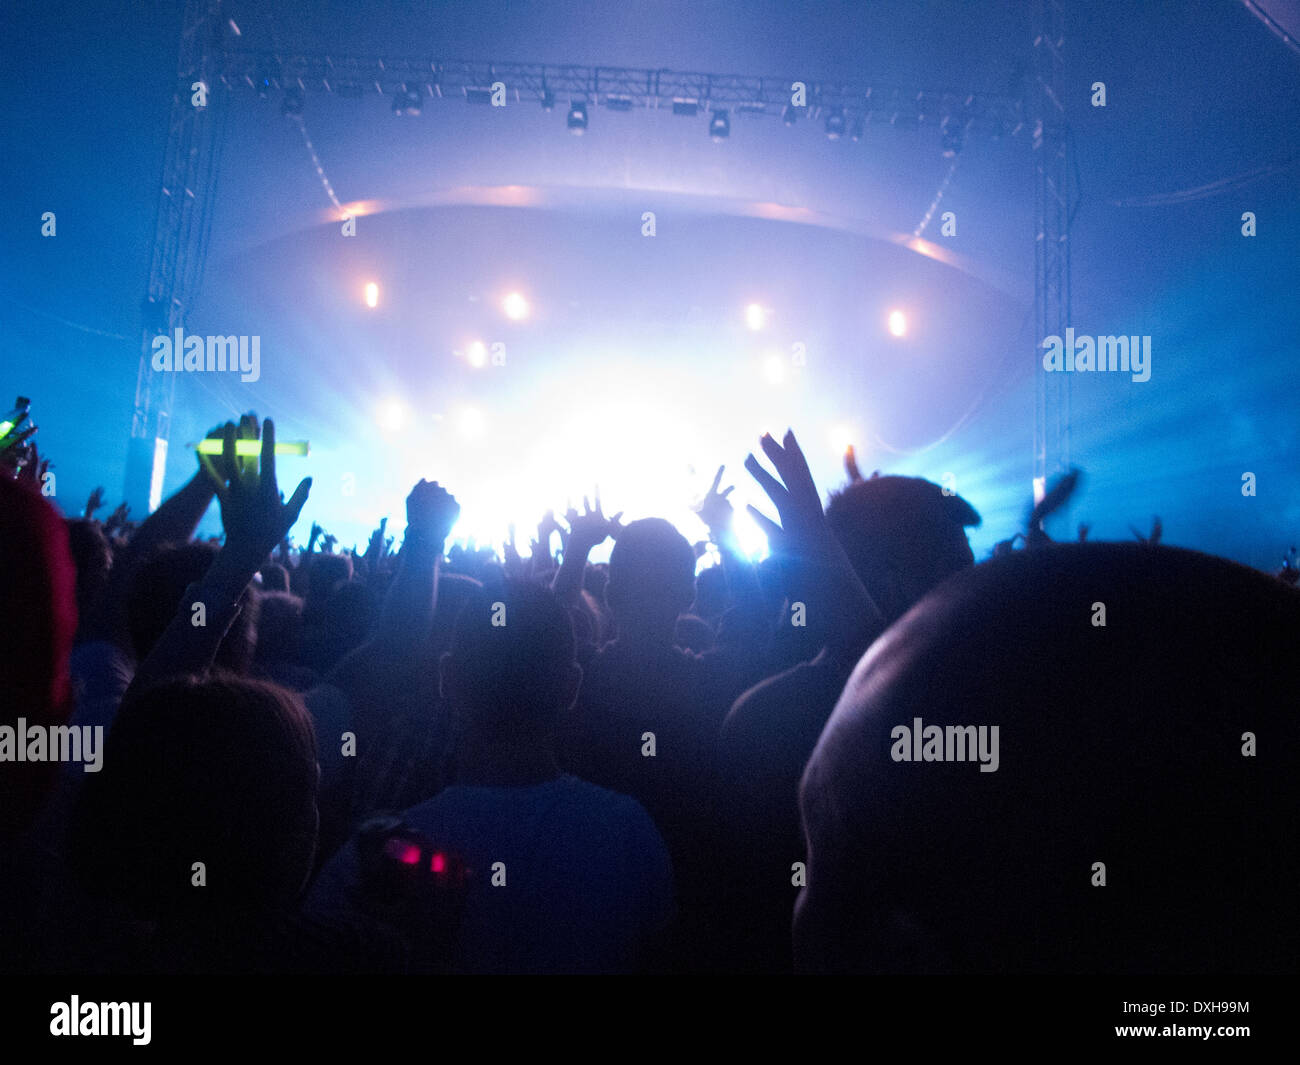 Silhouette of crowd facing stage at music festival - Stock Image